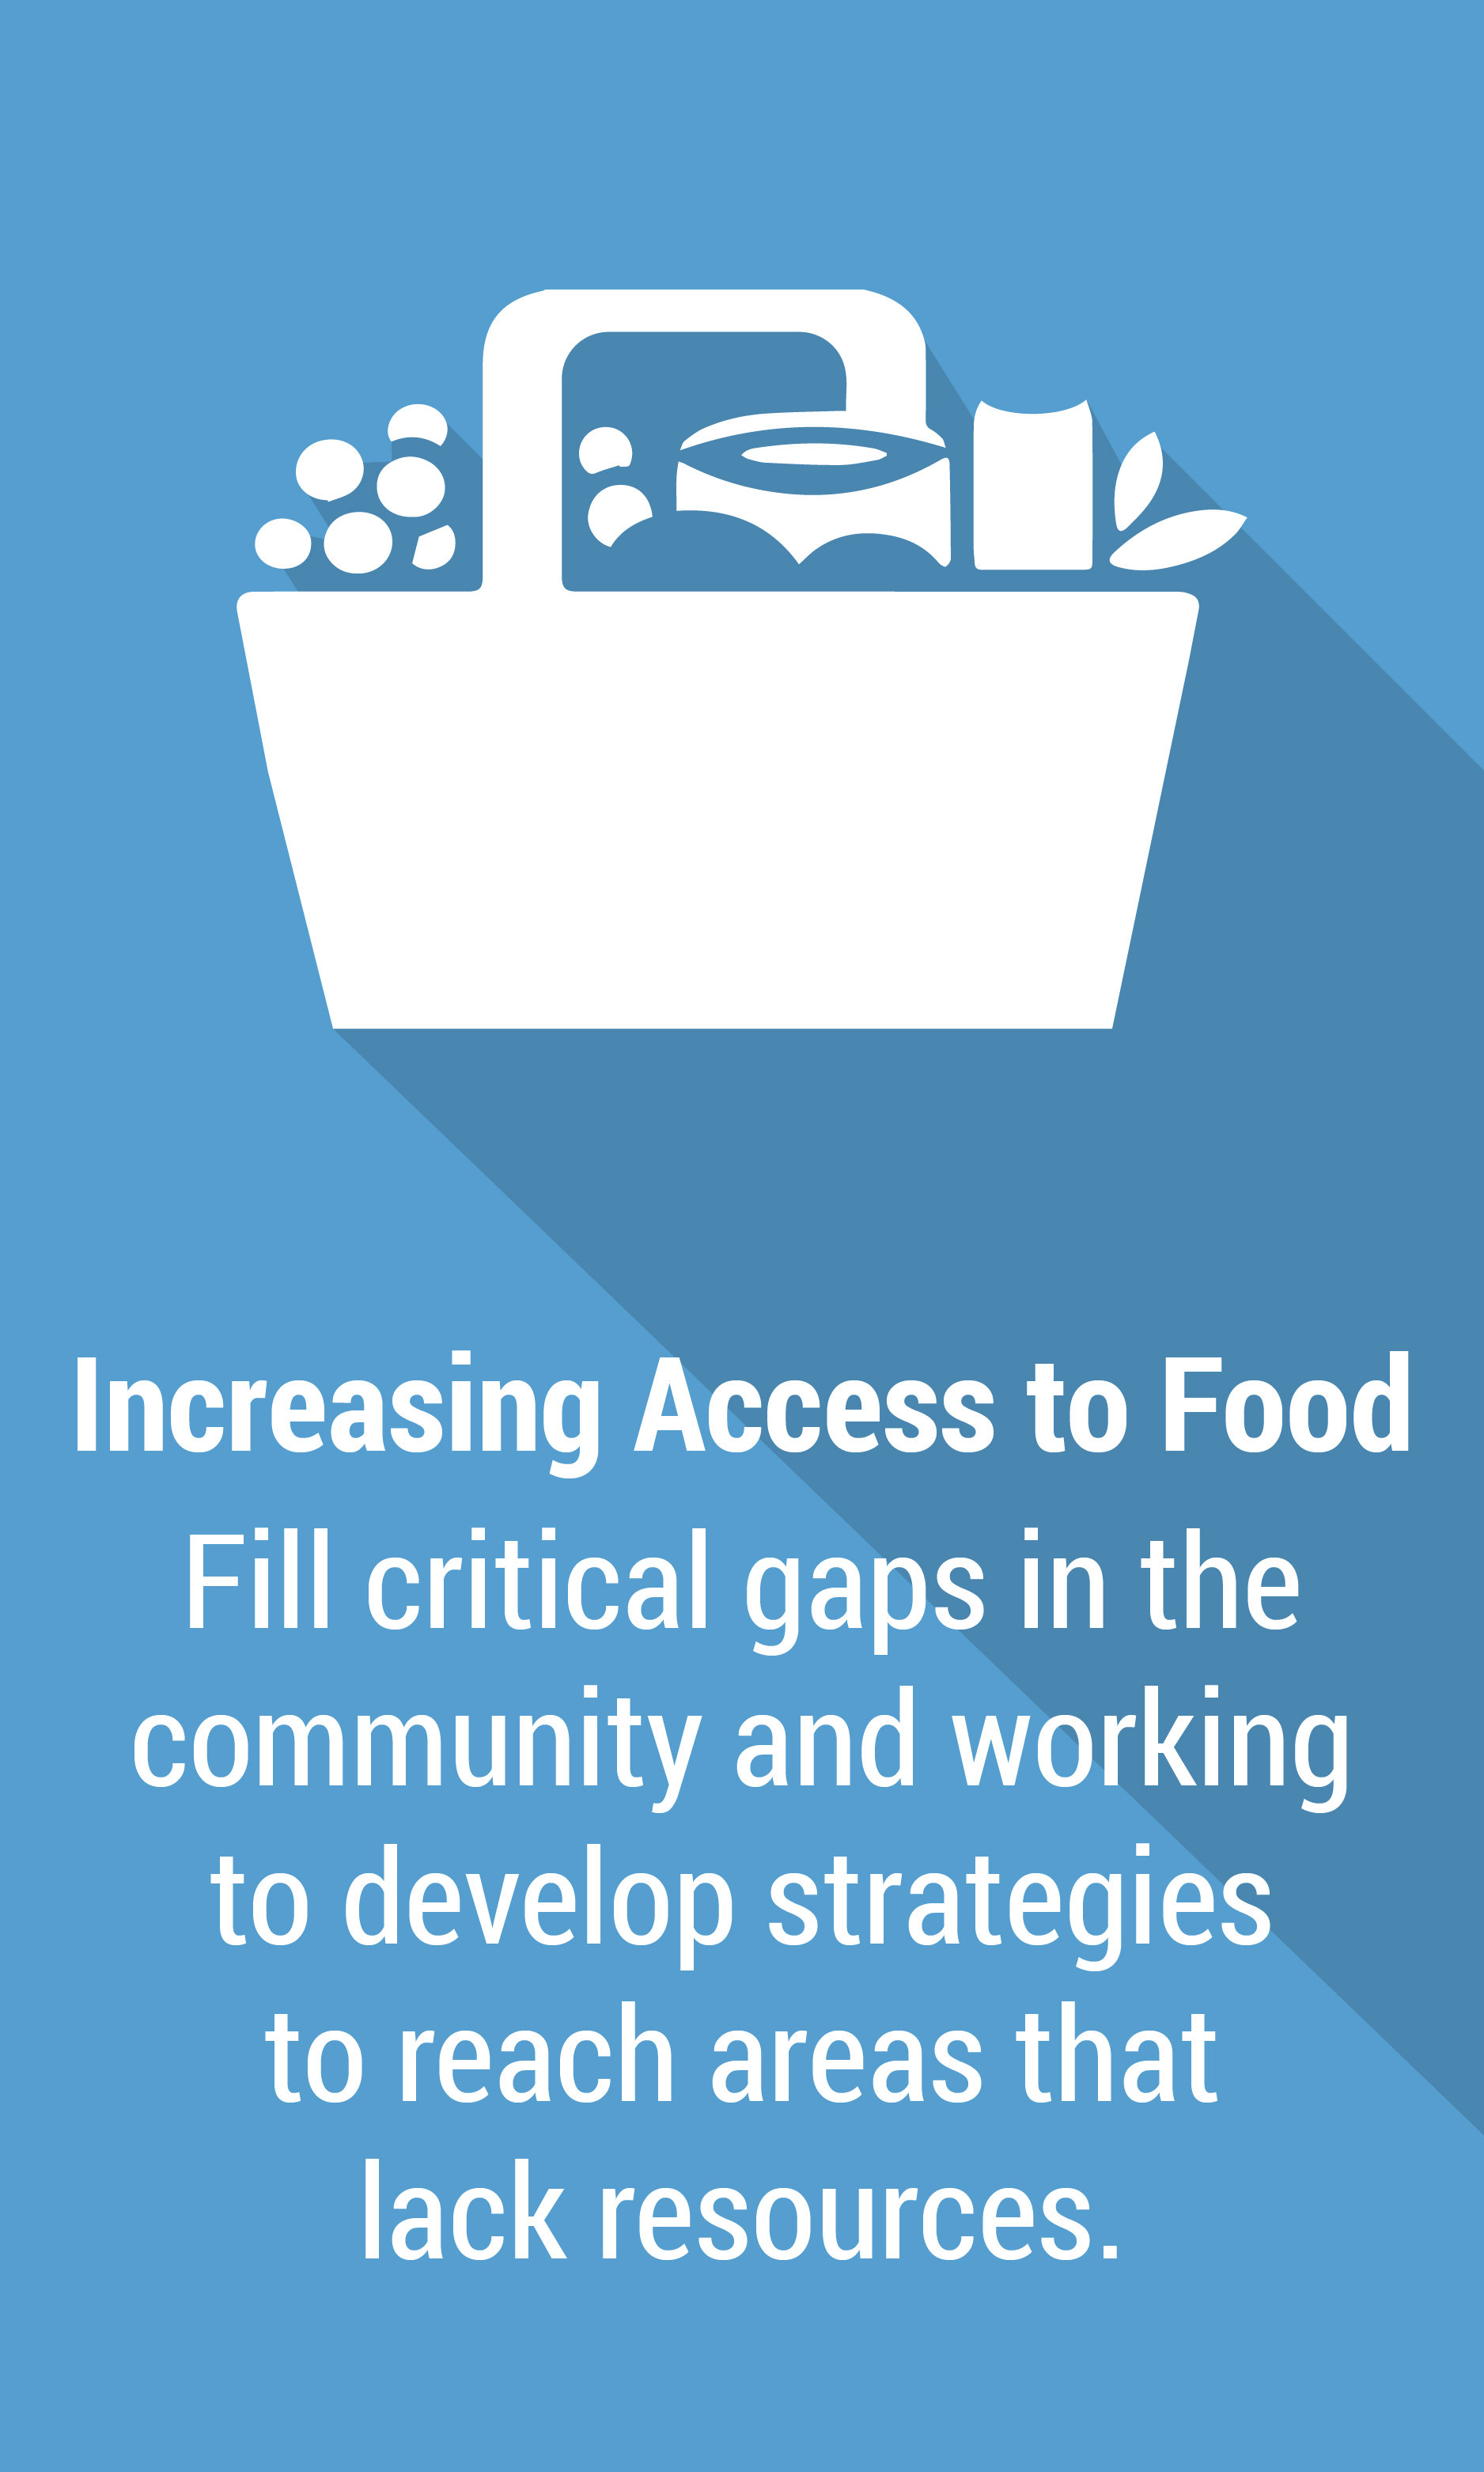 Access to Food - Addressing Financial Stability Issues